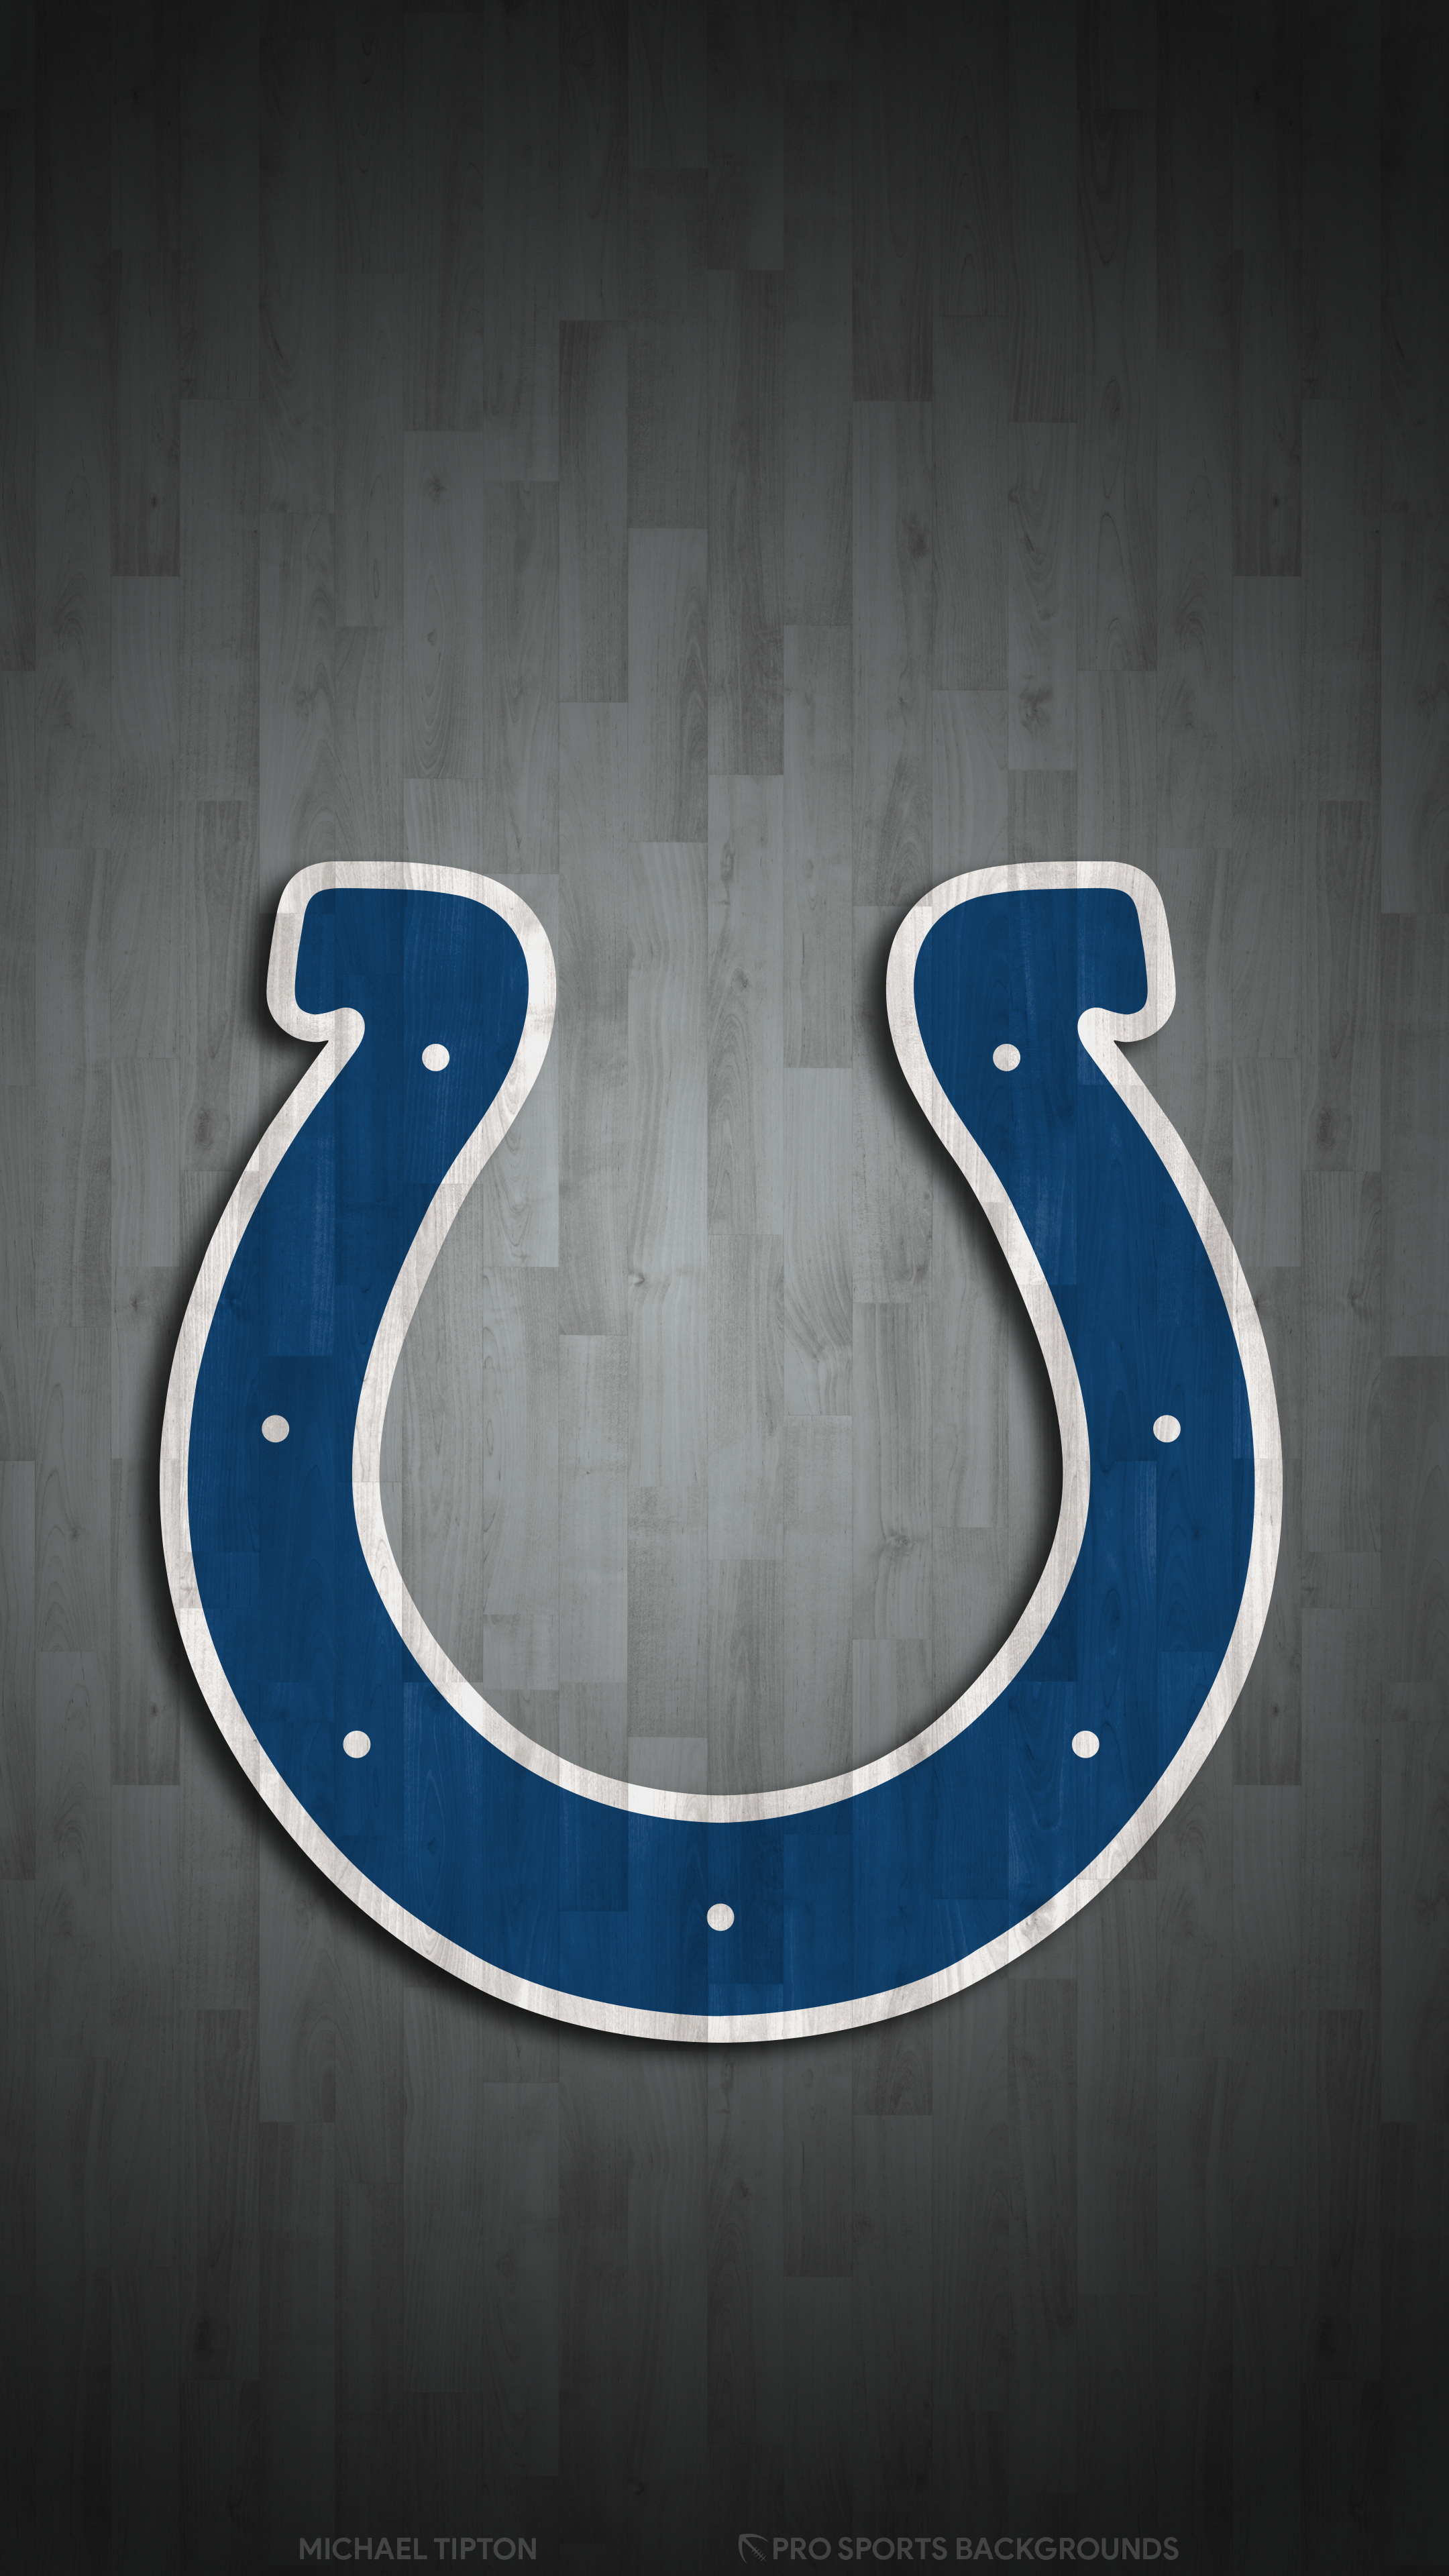 2019 Indianapolis Colts Wallpapers Pro Sports Backgrounds 2160x3840